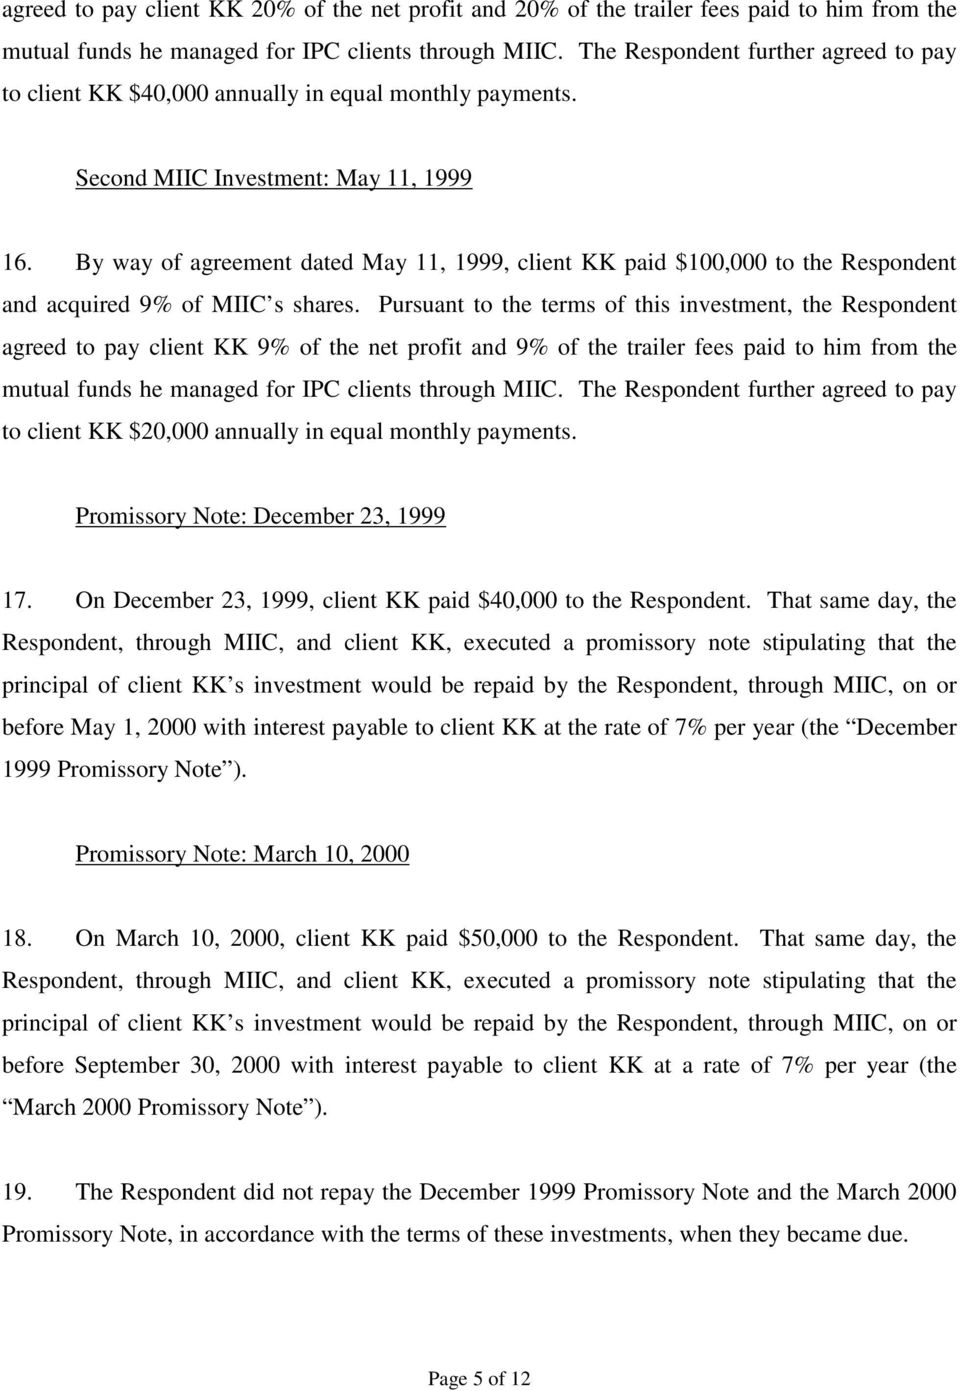 By way of agreement dated May 11, 1999, client KK paid $100,000 to the Respondent and acquired 9% of MIIC s shares.